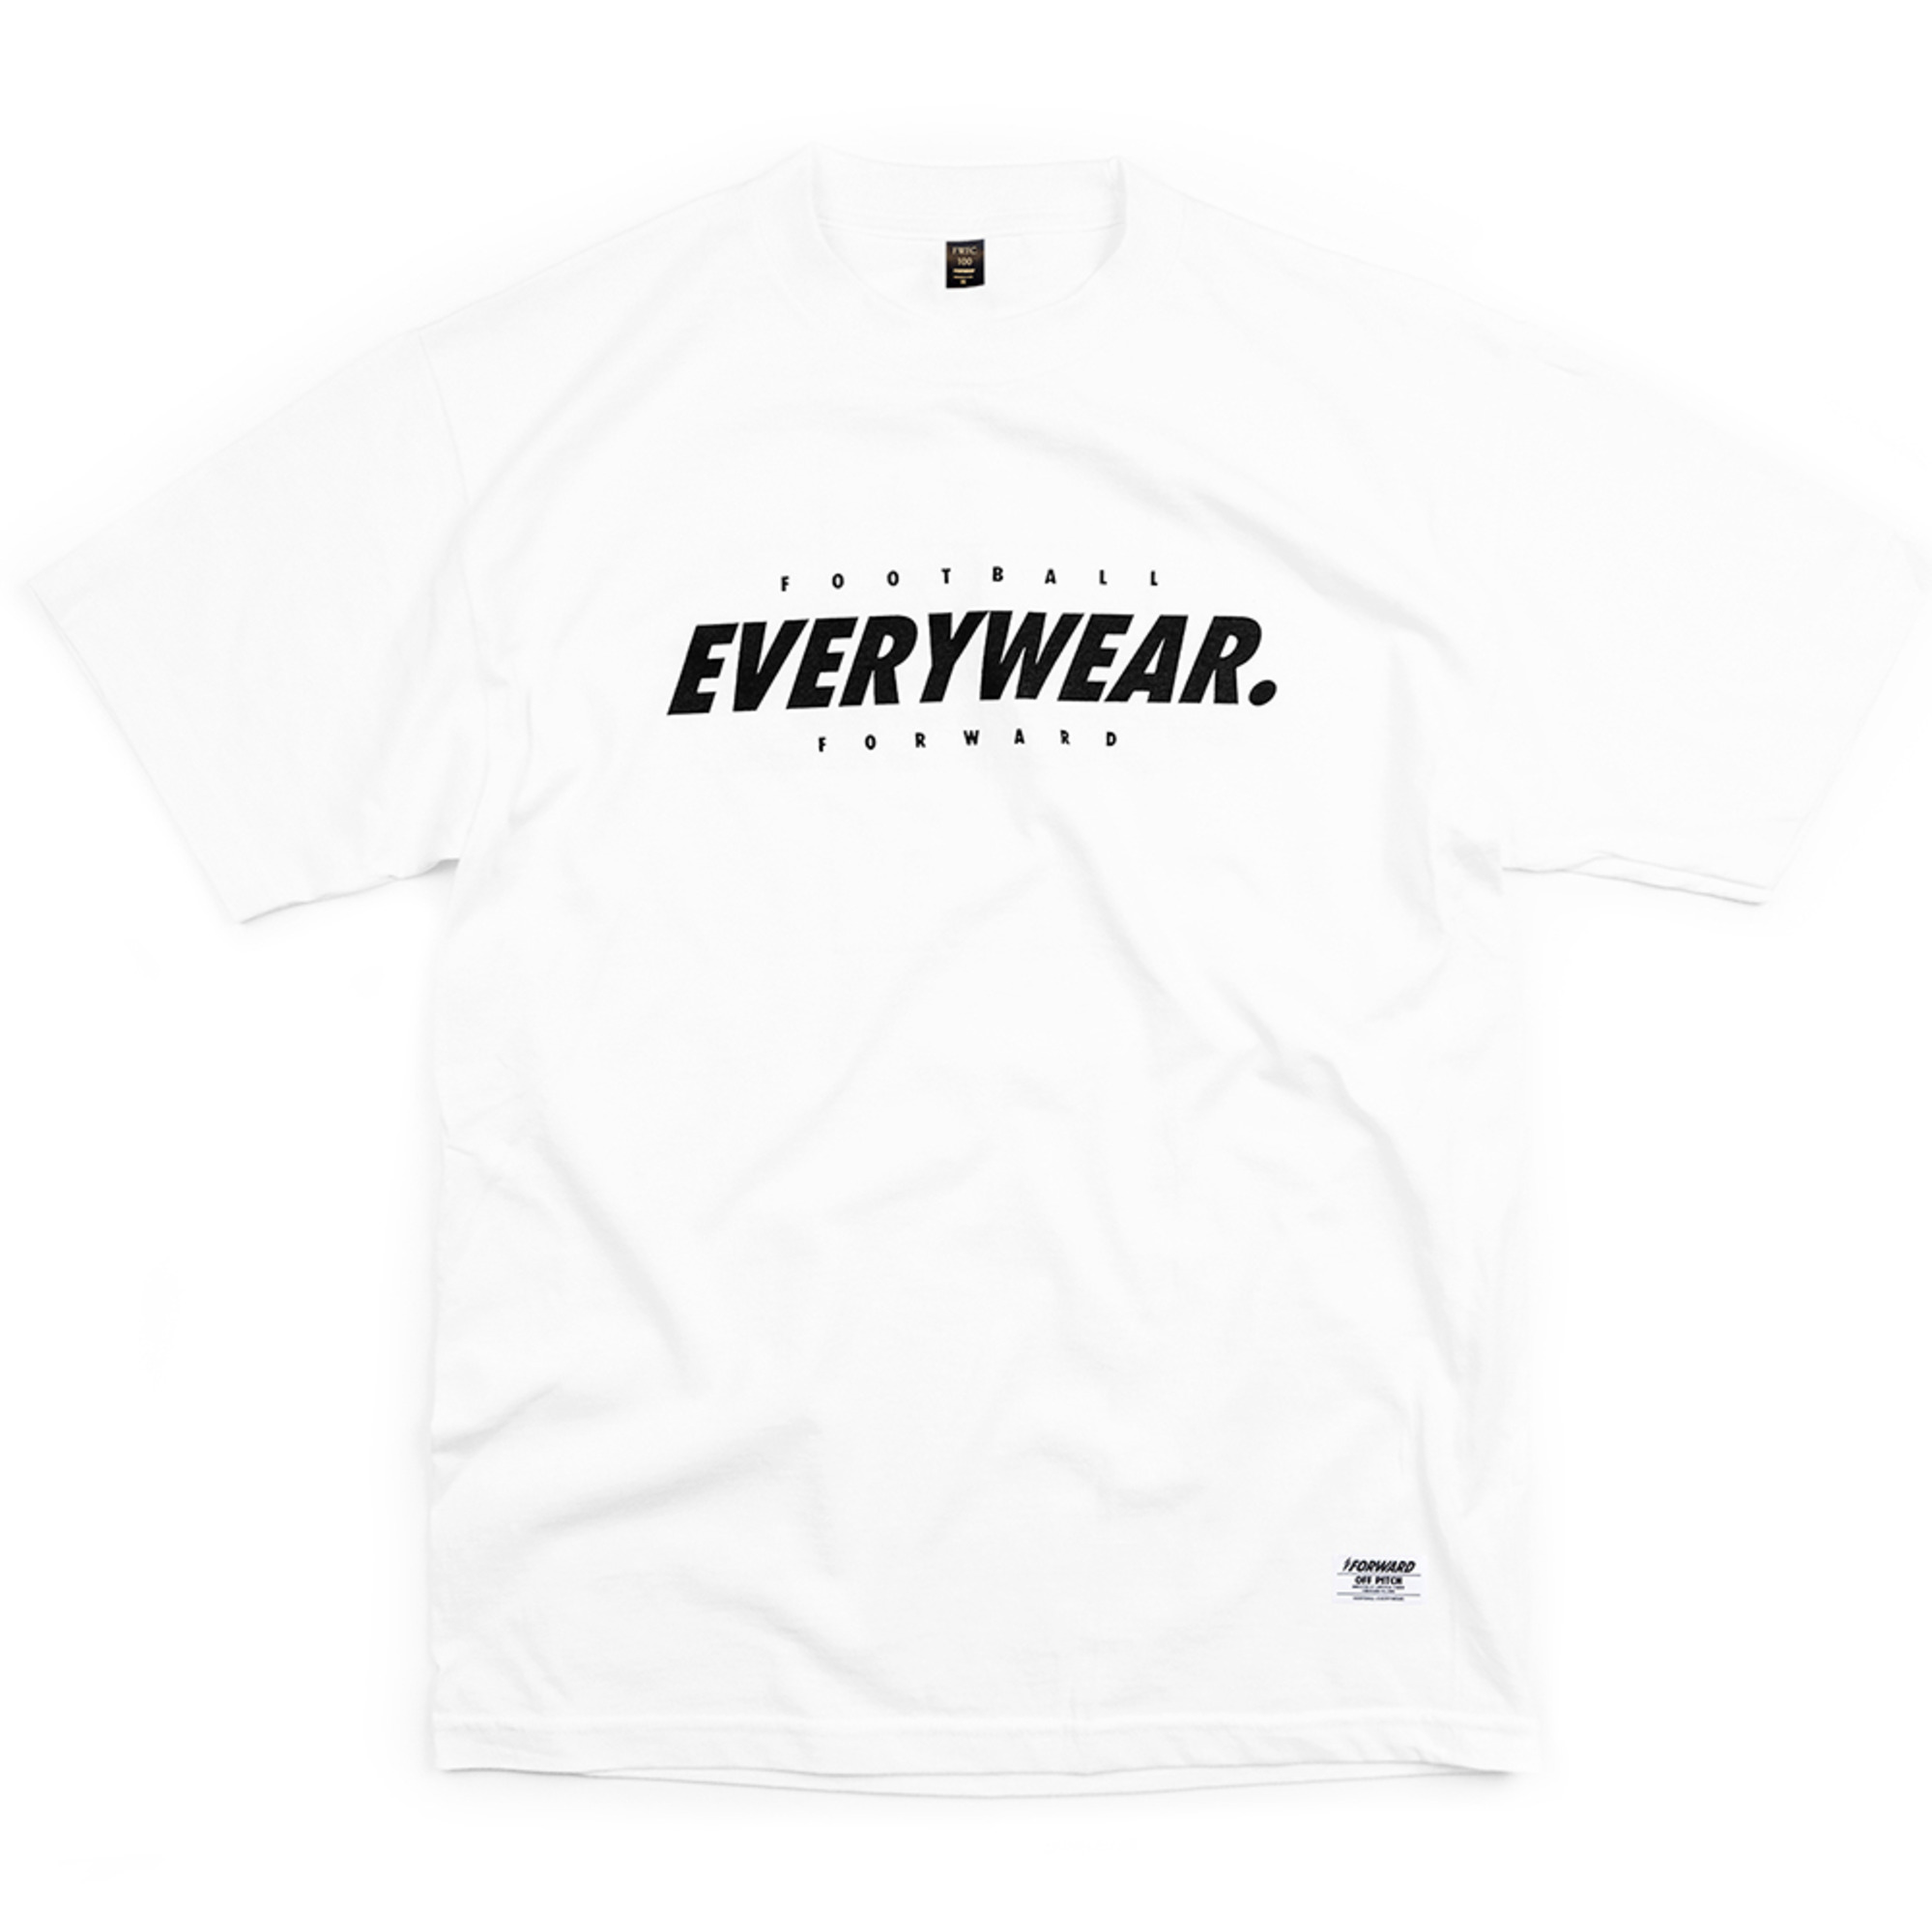 FWFC EVERYWEAR PITCH S/S COTTON T-SHIRT